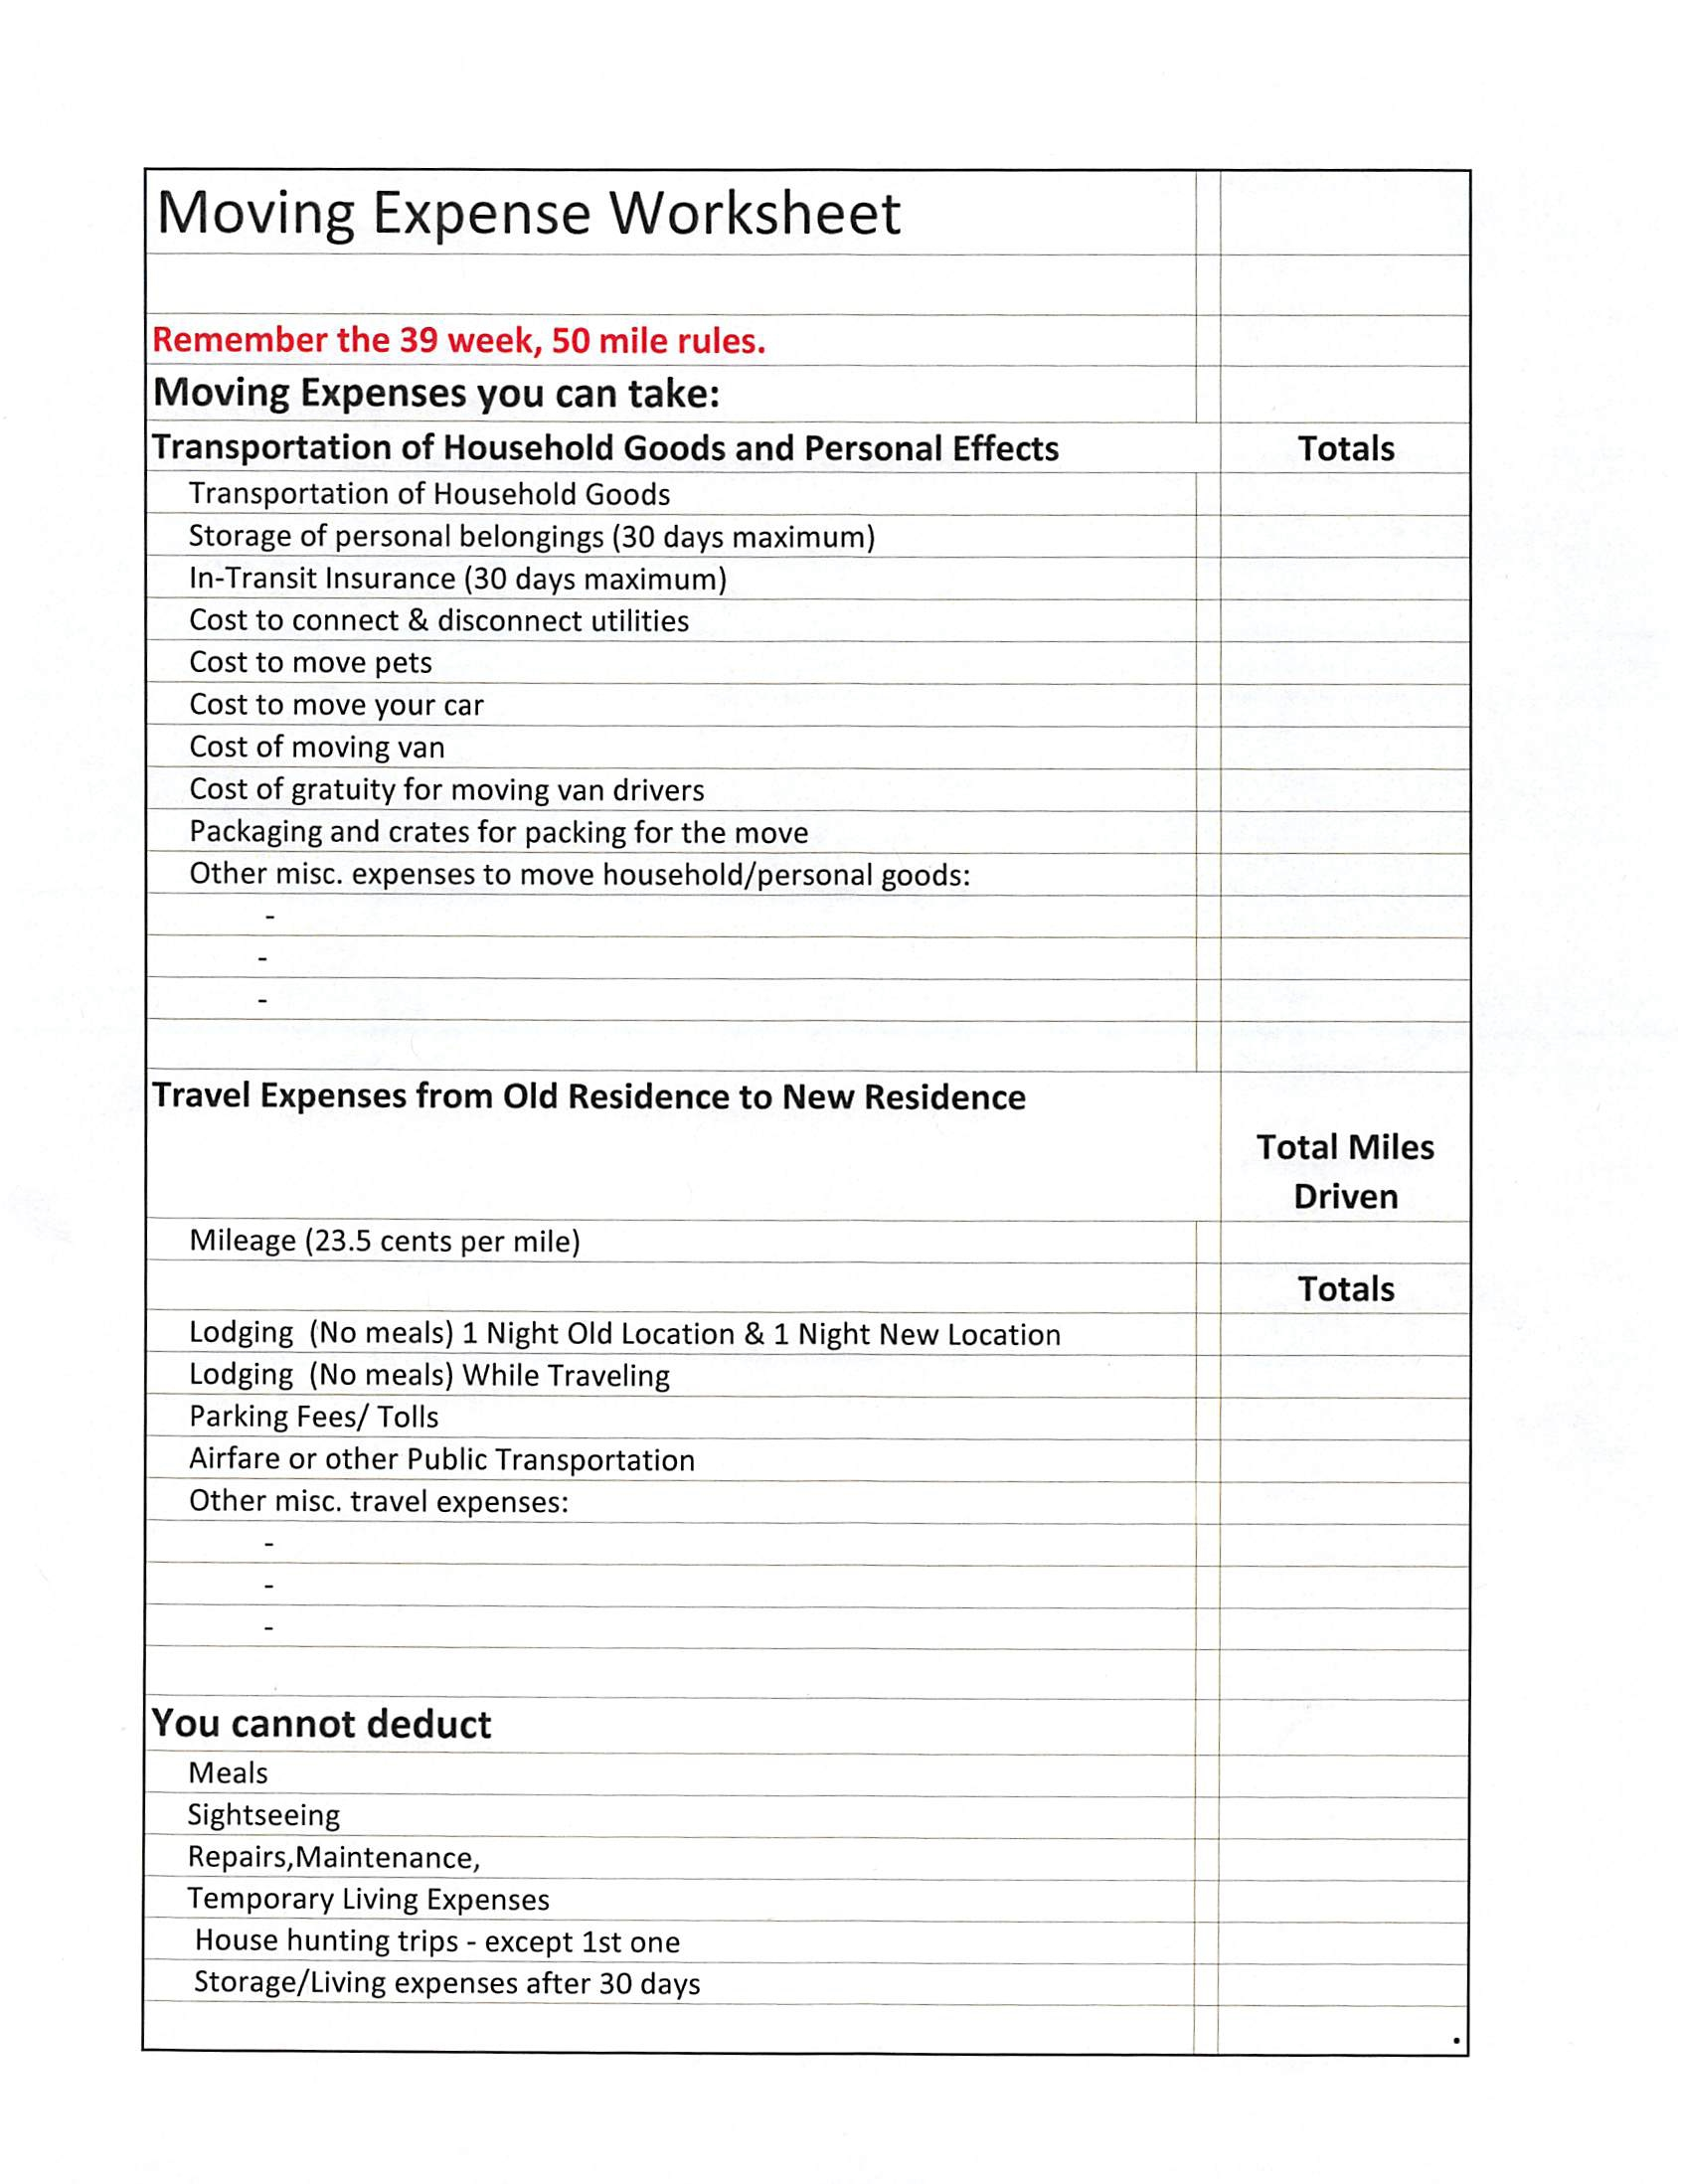 Moving Expense Worksheet